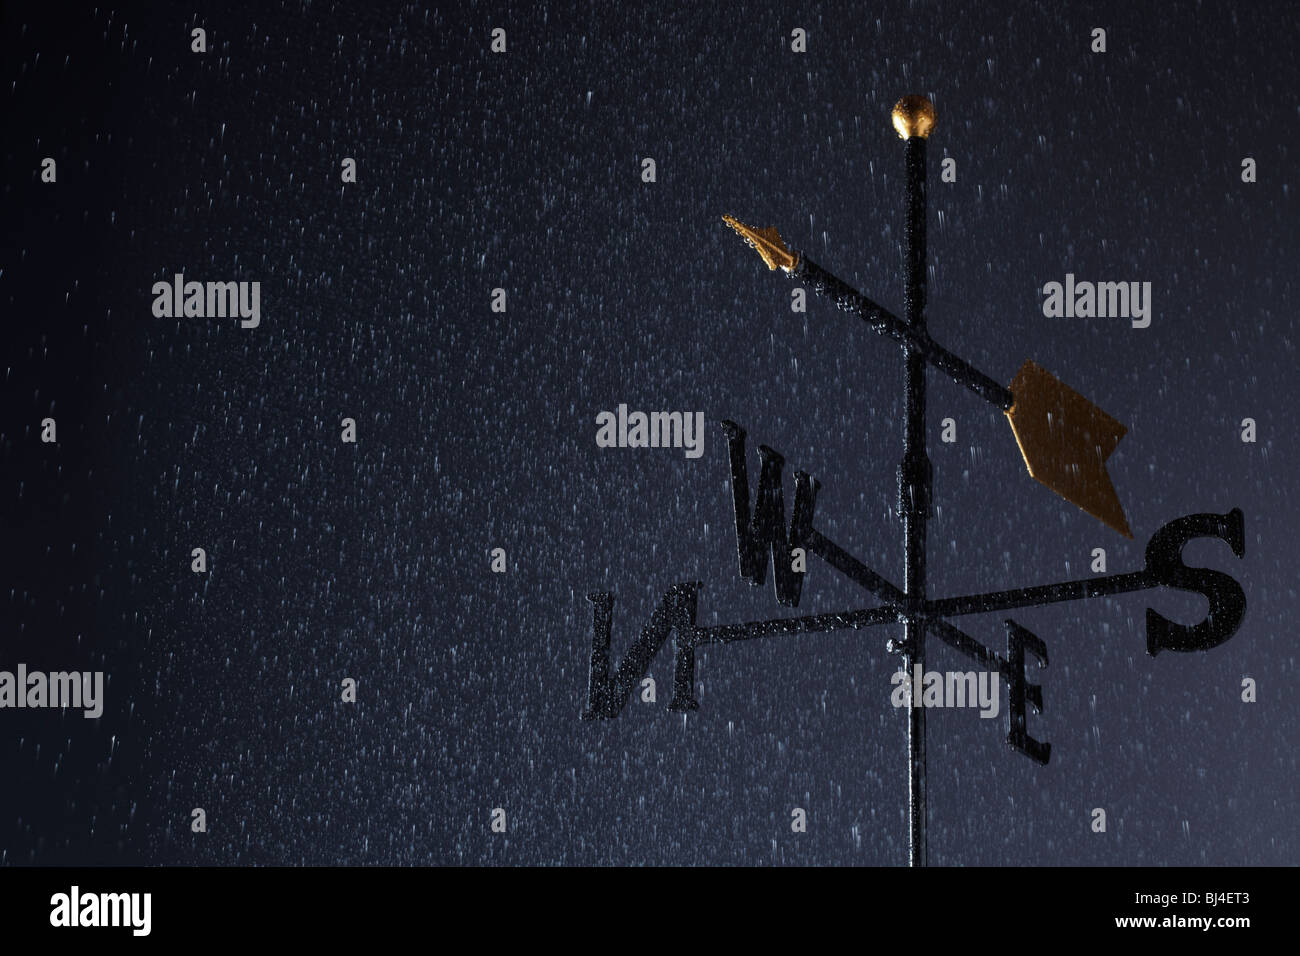 Weather Vane in Rain - Stock Image